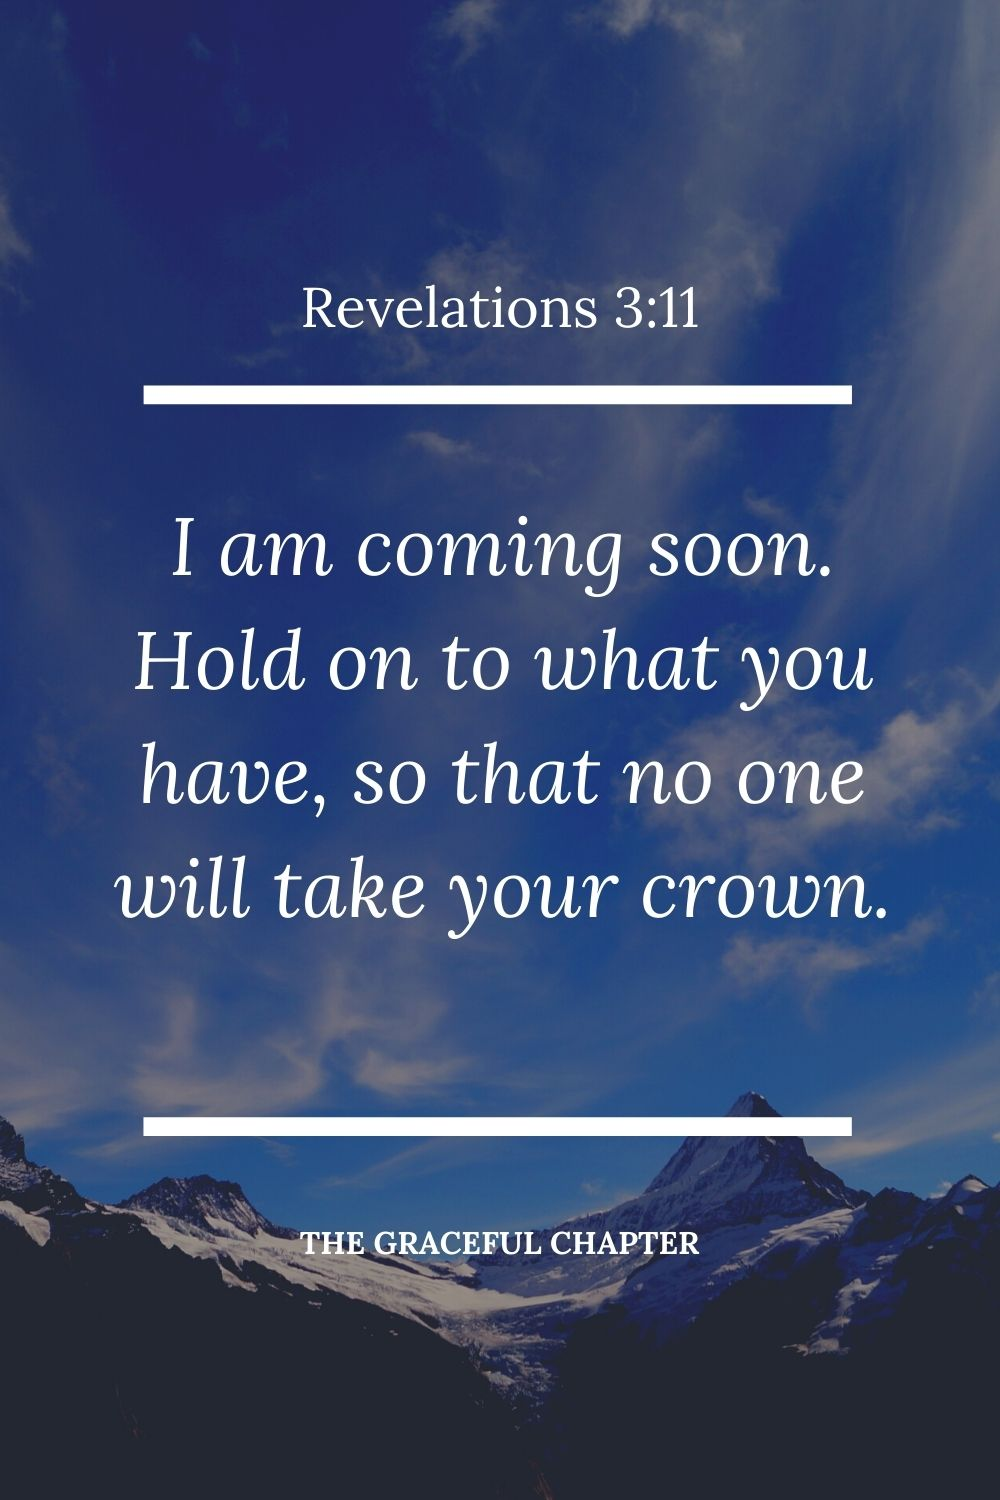 I am coming soon. Hold on to what you have, so that no one will take your crown. Revelations 3:11